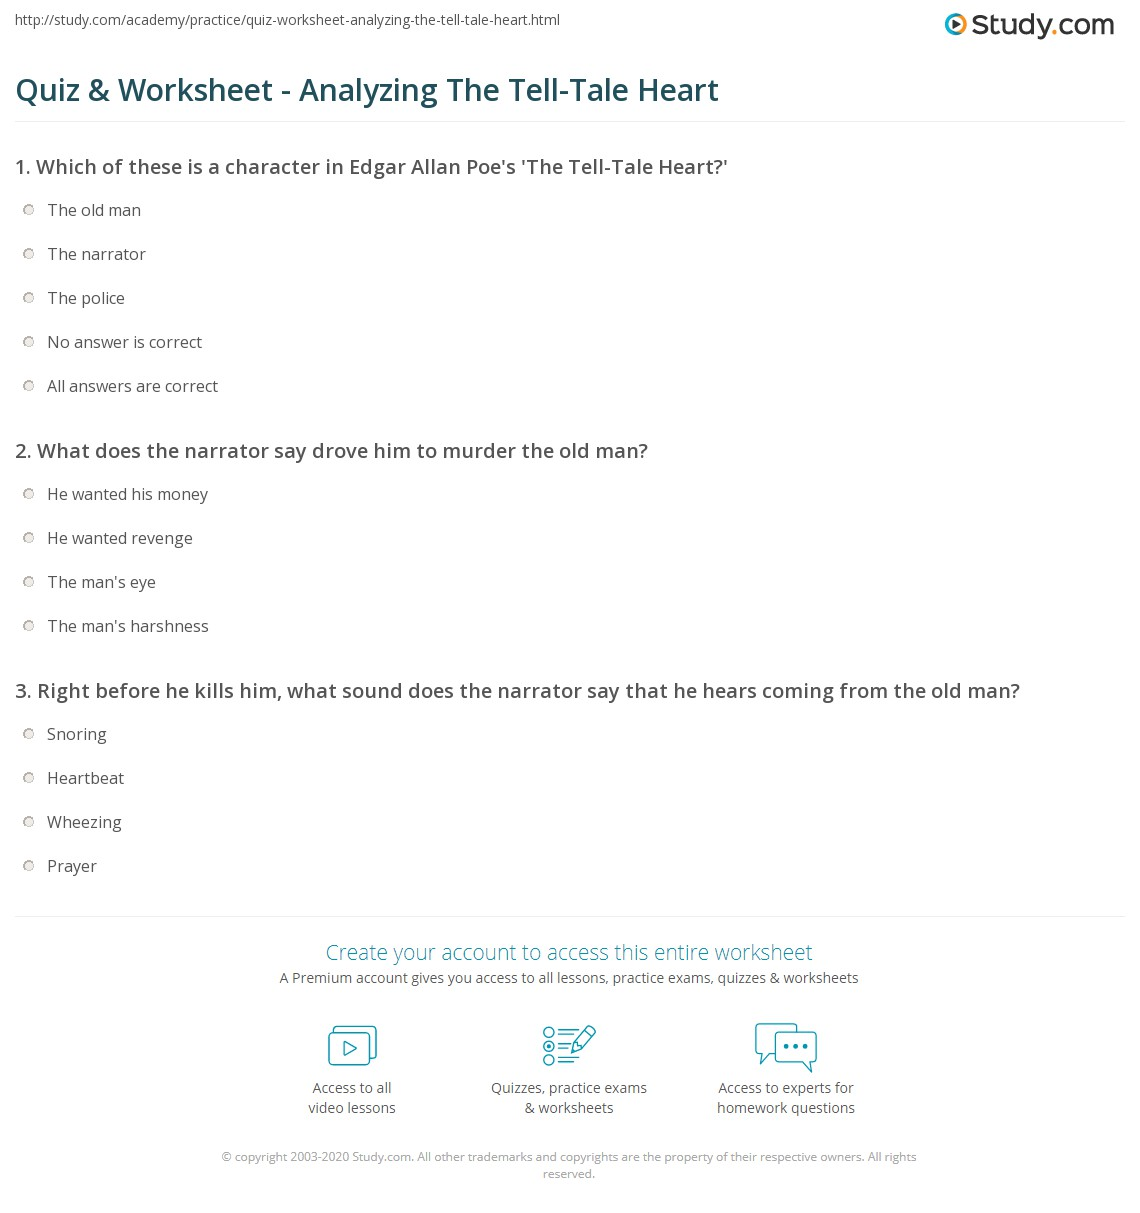 Quiz Worksheet Analyzing The Tell Tale Heart Study